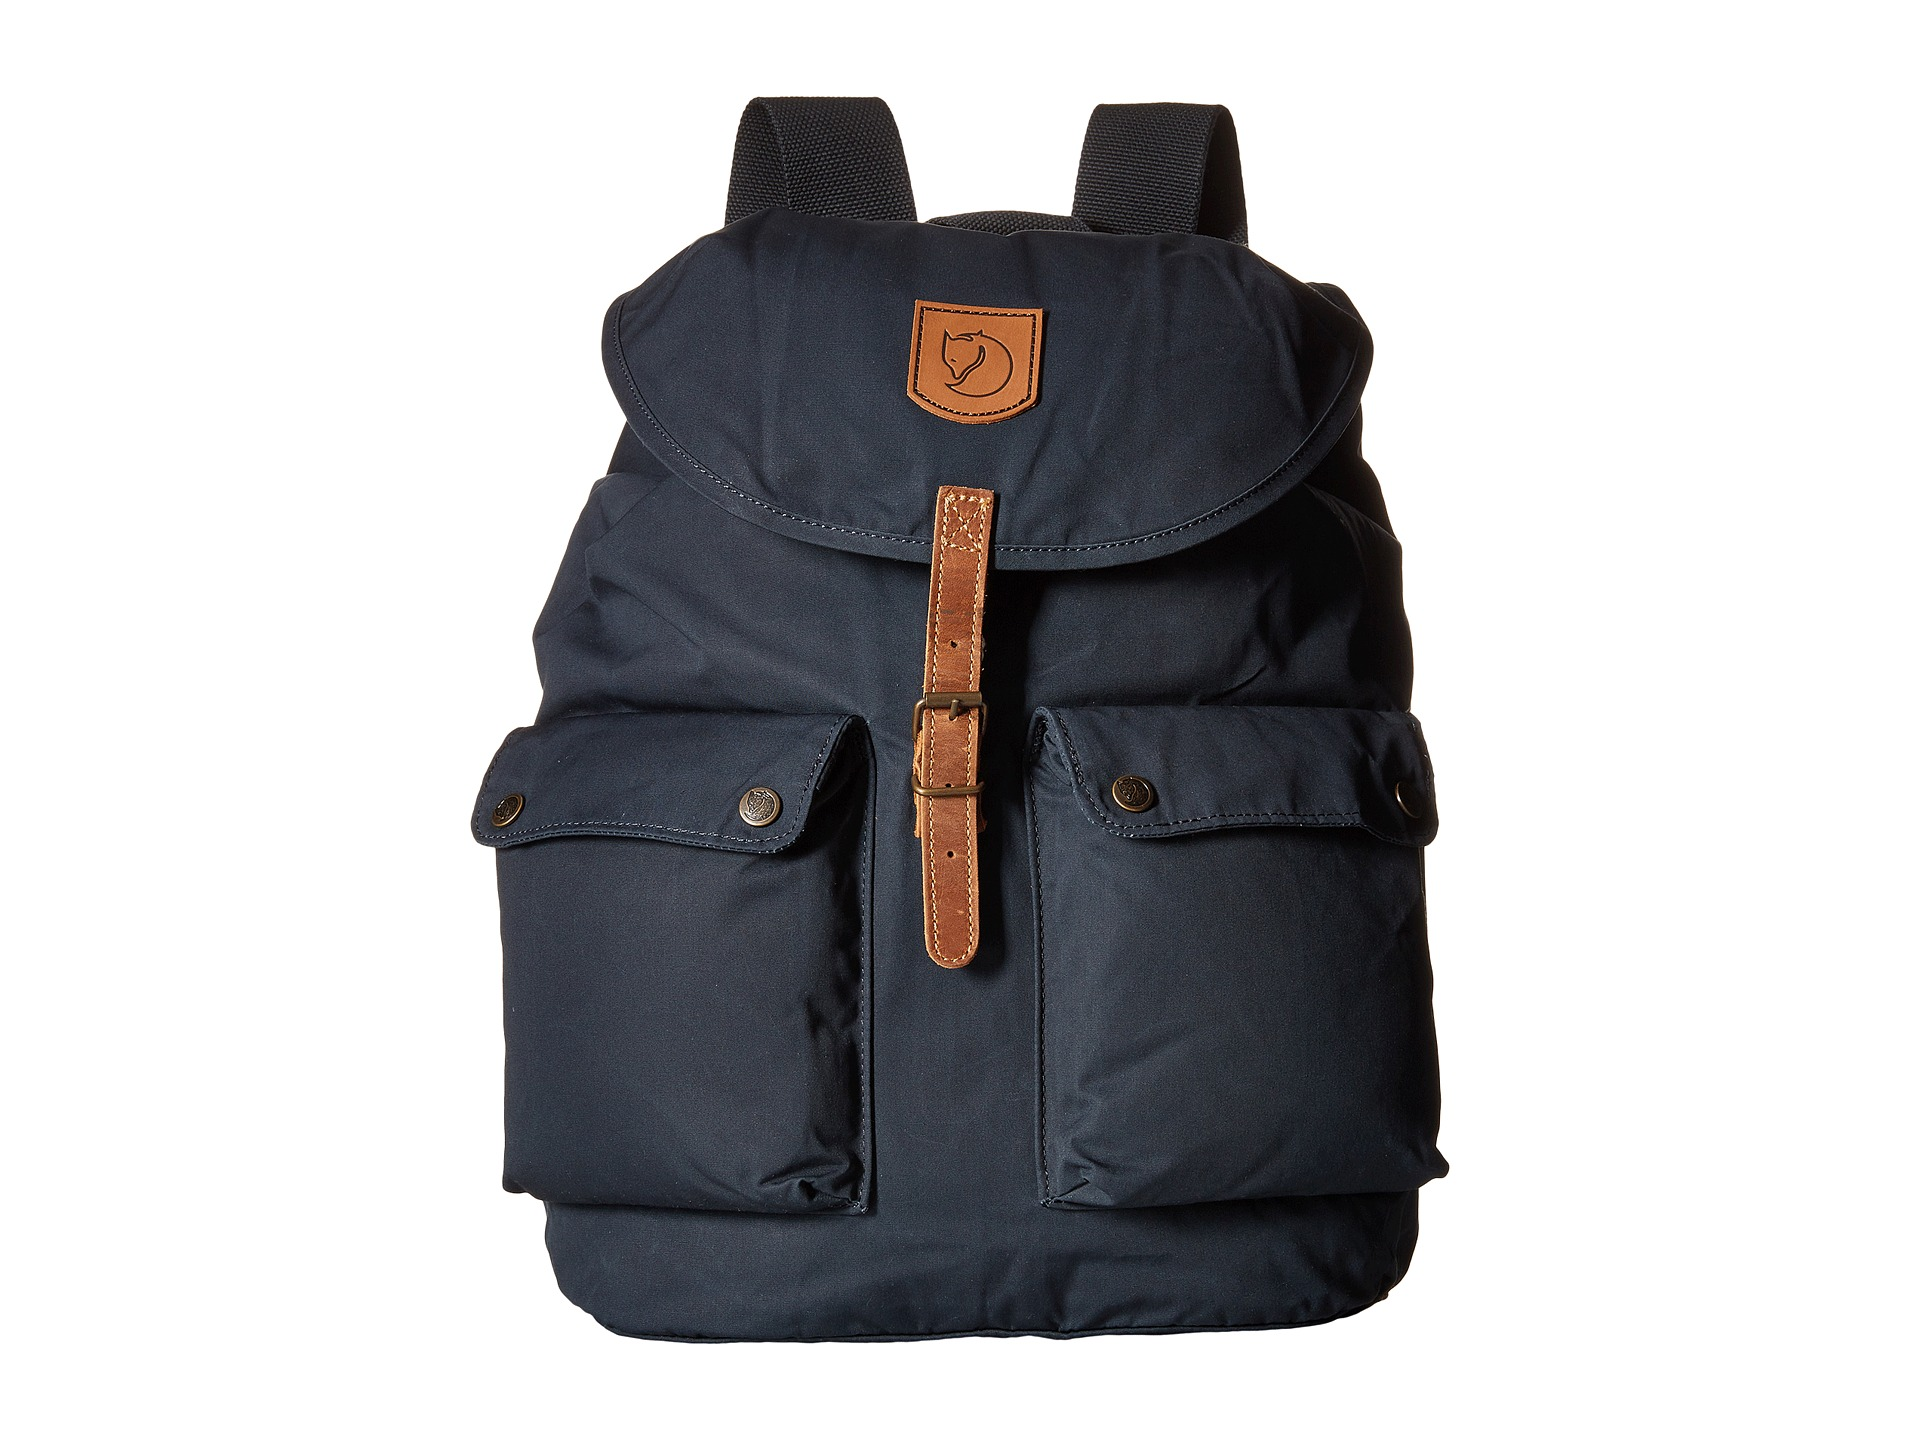 fjällräven greenland backpack large review